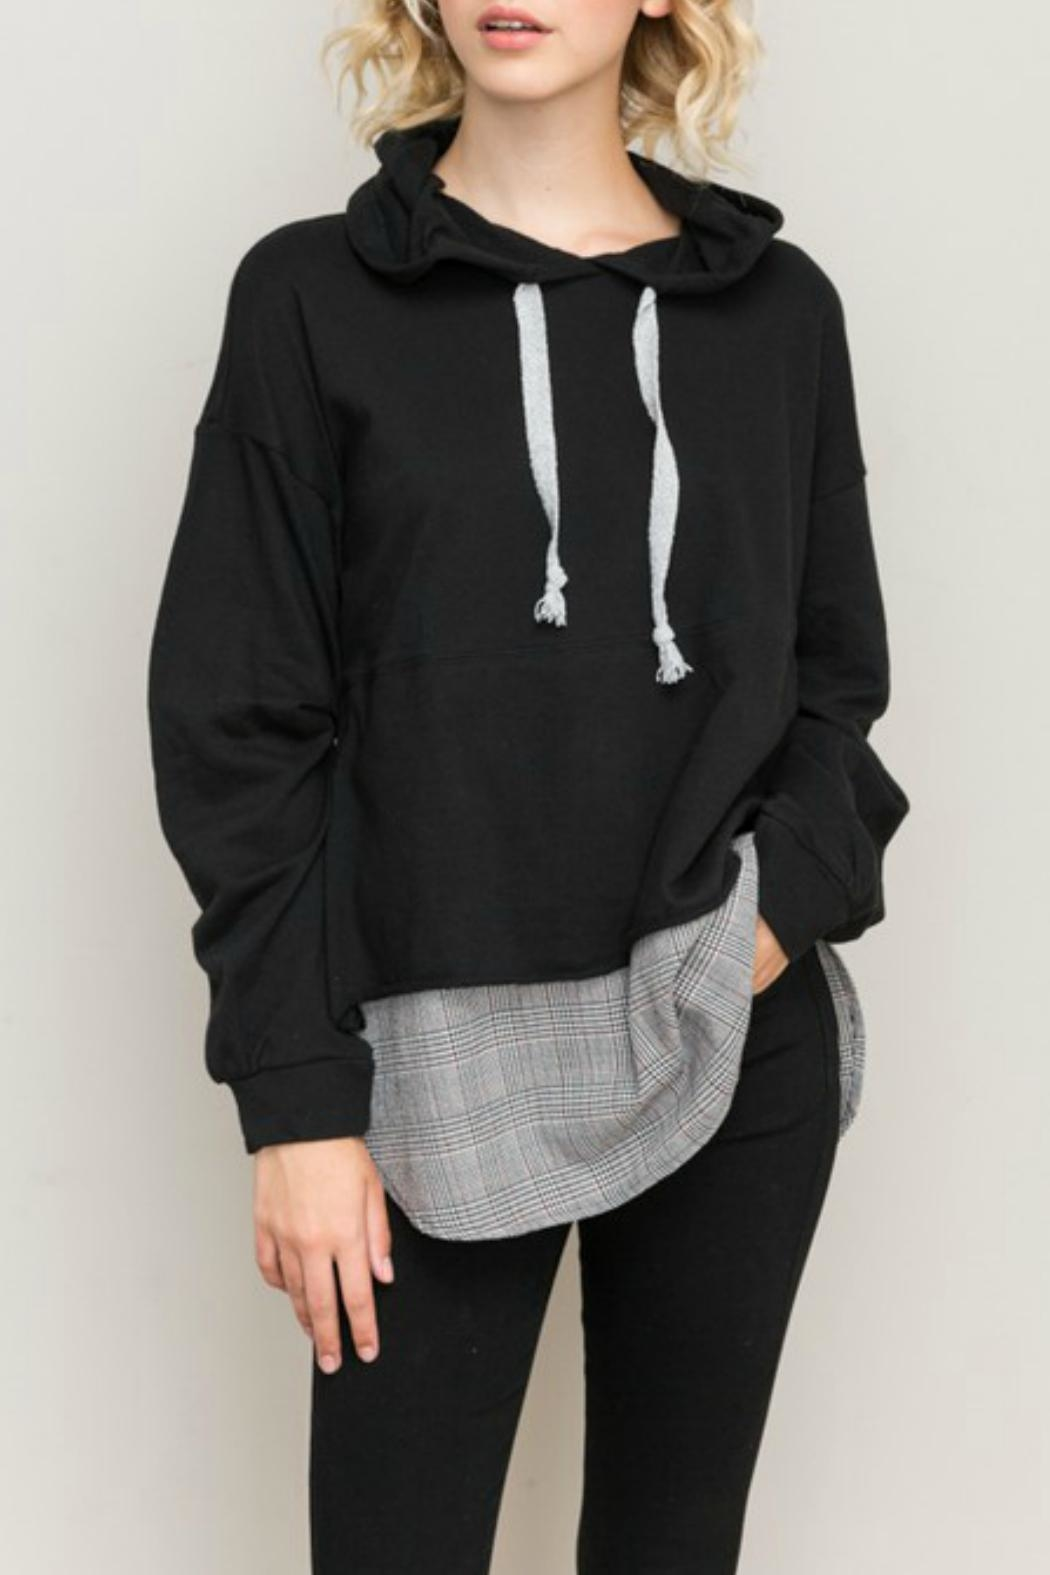 acc5455f489de Hem   Thread Layered Look Hoodie from Tennessee by Terri Leigh s ...